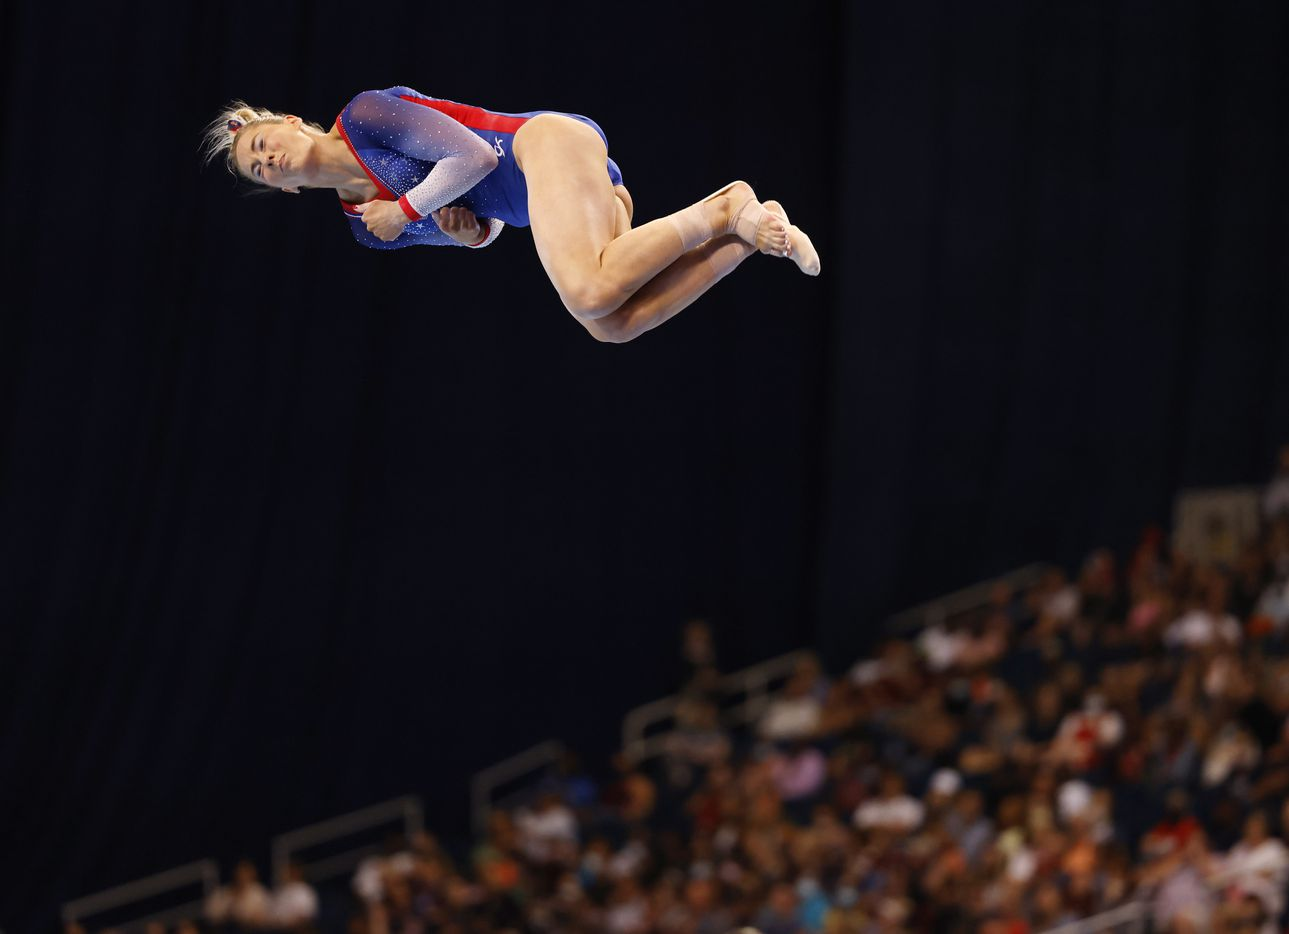 MyKayla Skinner competes in the floor exercise during day 2 of the women's 2021 U.S. Olympic Trials at The Dome at America's Center on Saturday, June 27, 2021 in St Louis, Missouri.(Vernon Bryant/The Dallas Morning News)